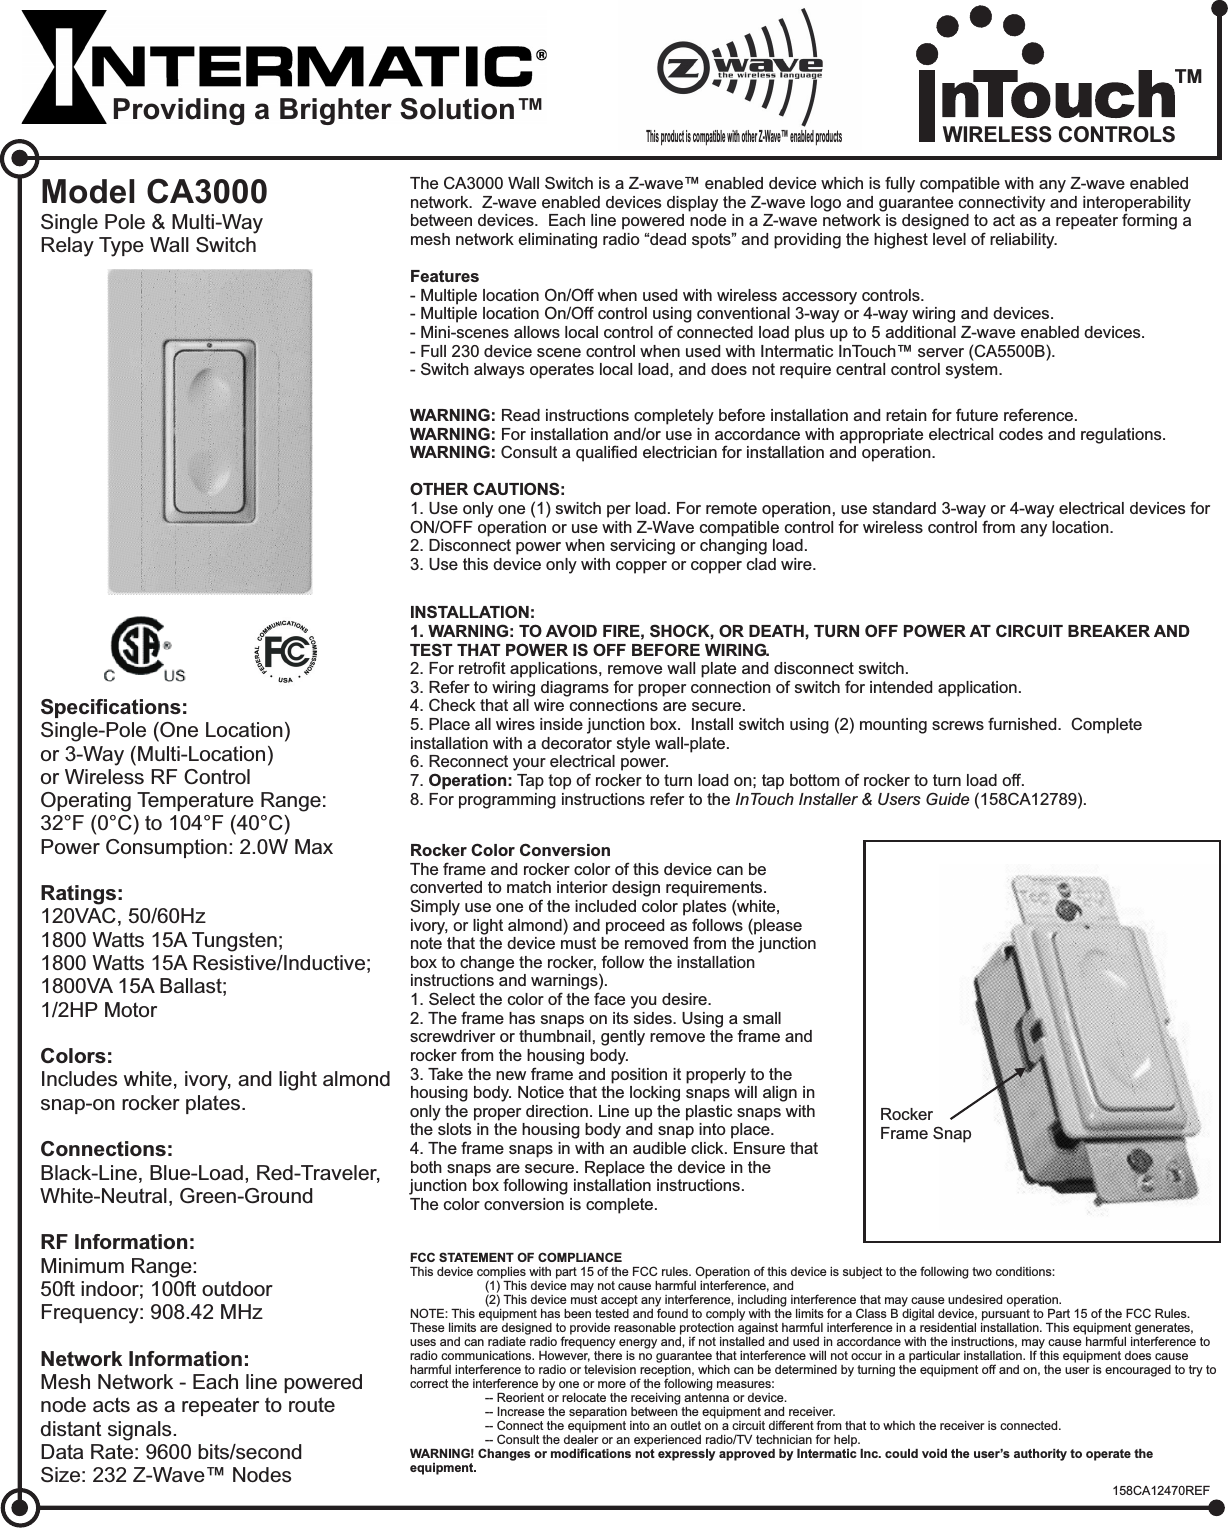 50 Amp On Off On Toggle Switch Manual Guide